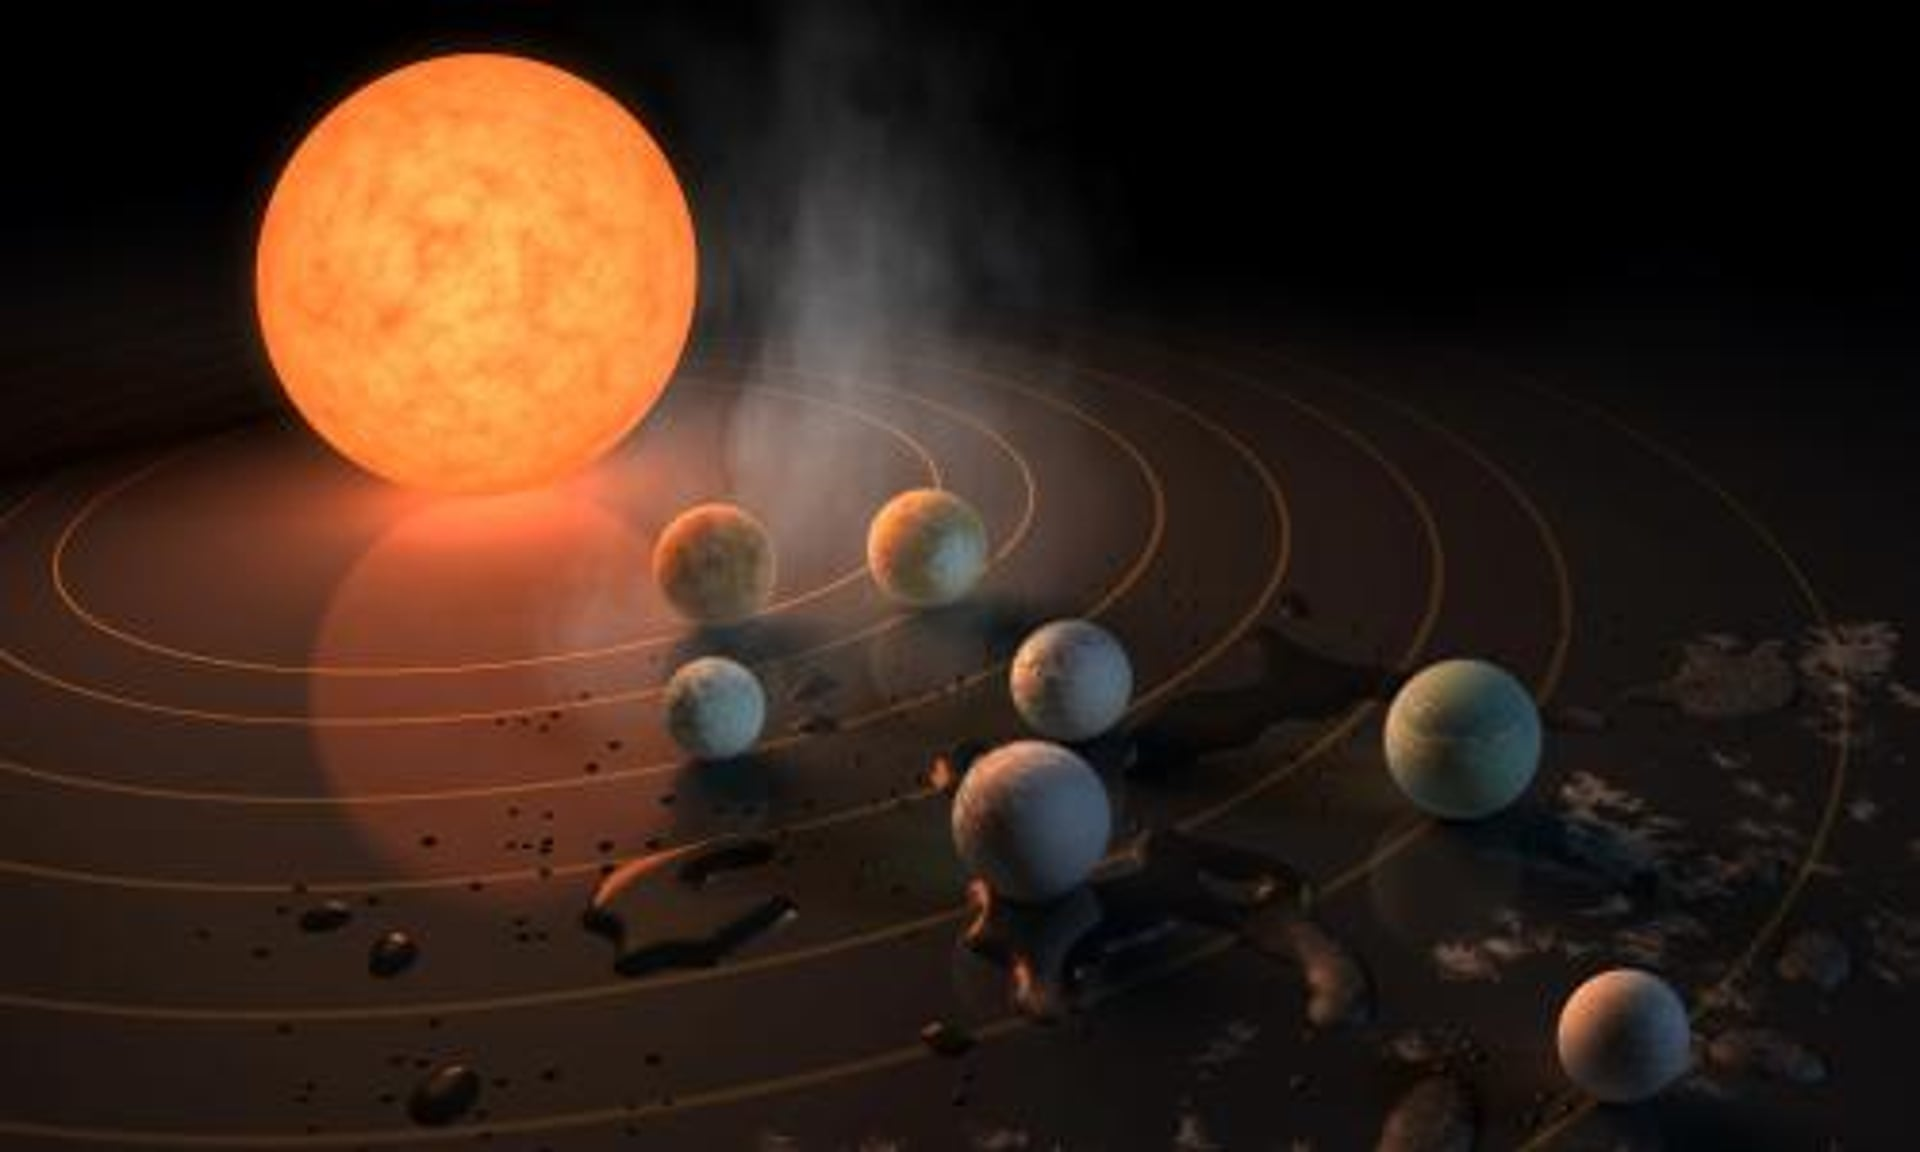 Exoplanet Discovery Seven Earth Sized Planets Found Orbiting Nearby Star